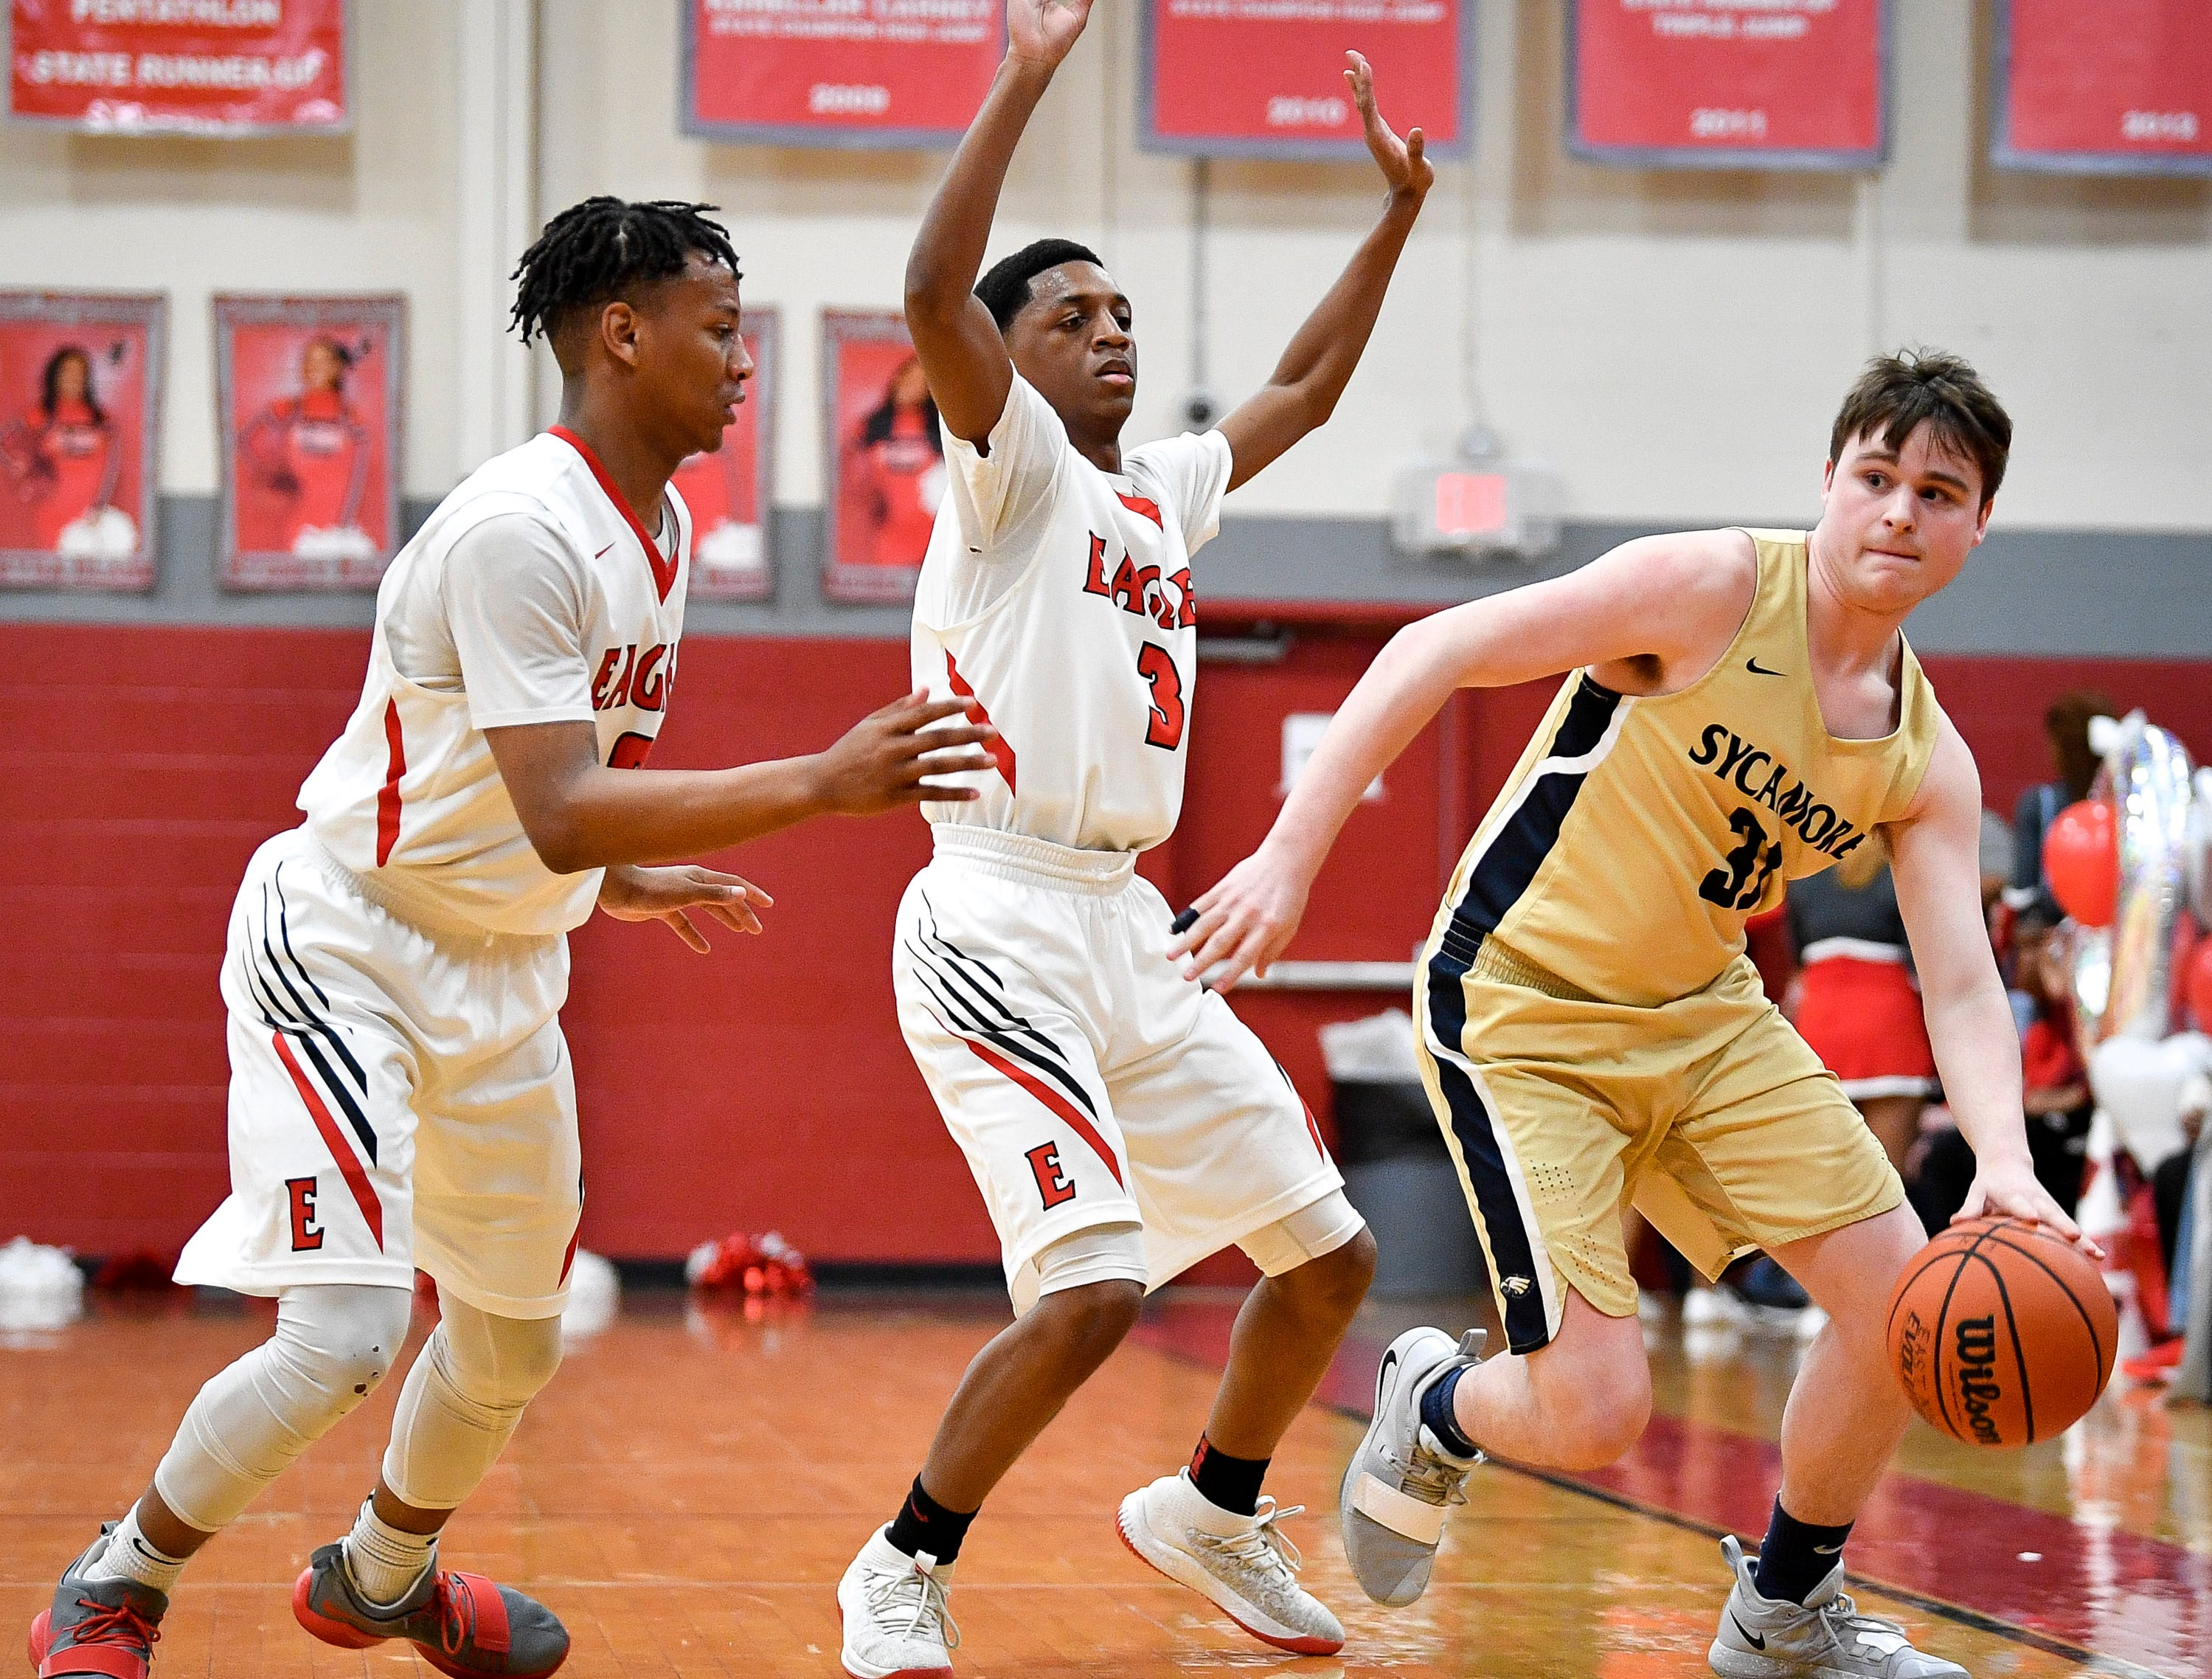 East Nashville's Taras Carter (0) and Caleb Grimes (3) guard Sycamore's Dalton Dutton (31) during the first half at East Nashville Magnet High School in Nashville, Tenn., Friday, Feb. 1, 2019.